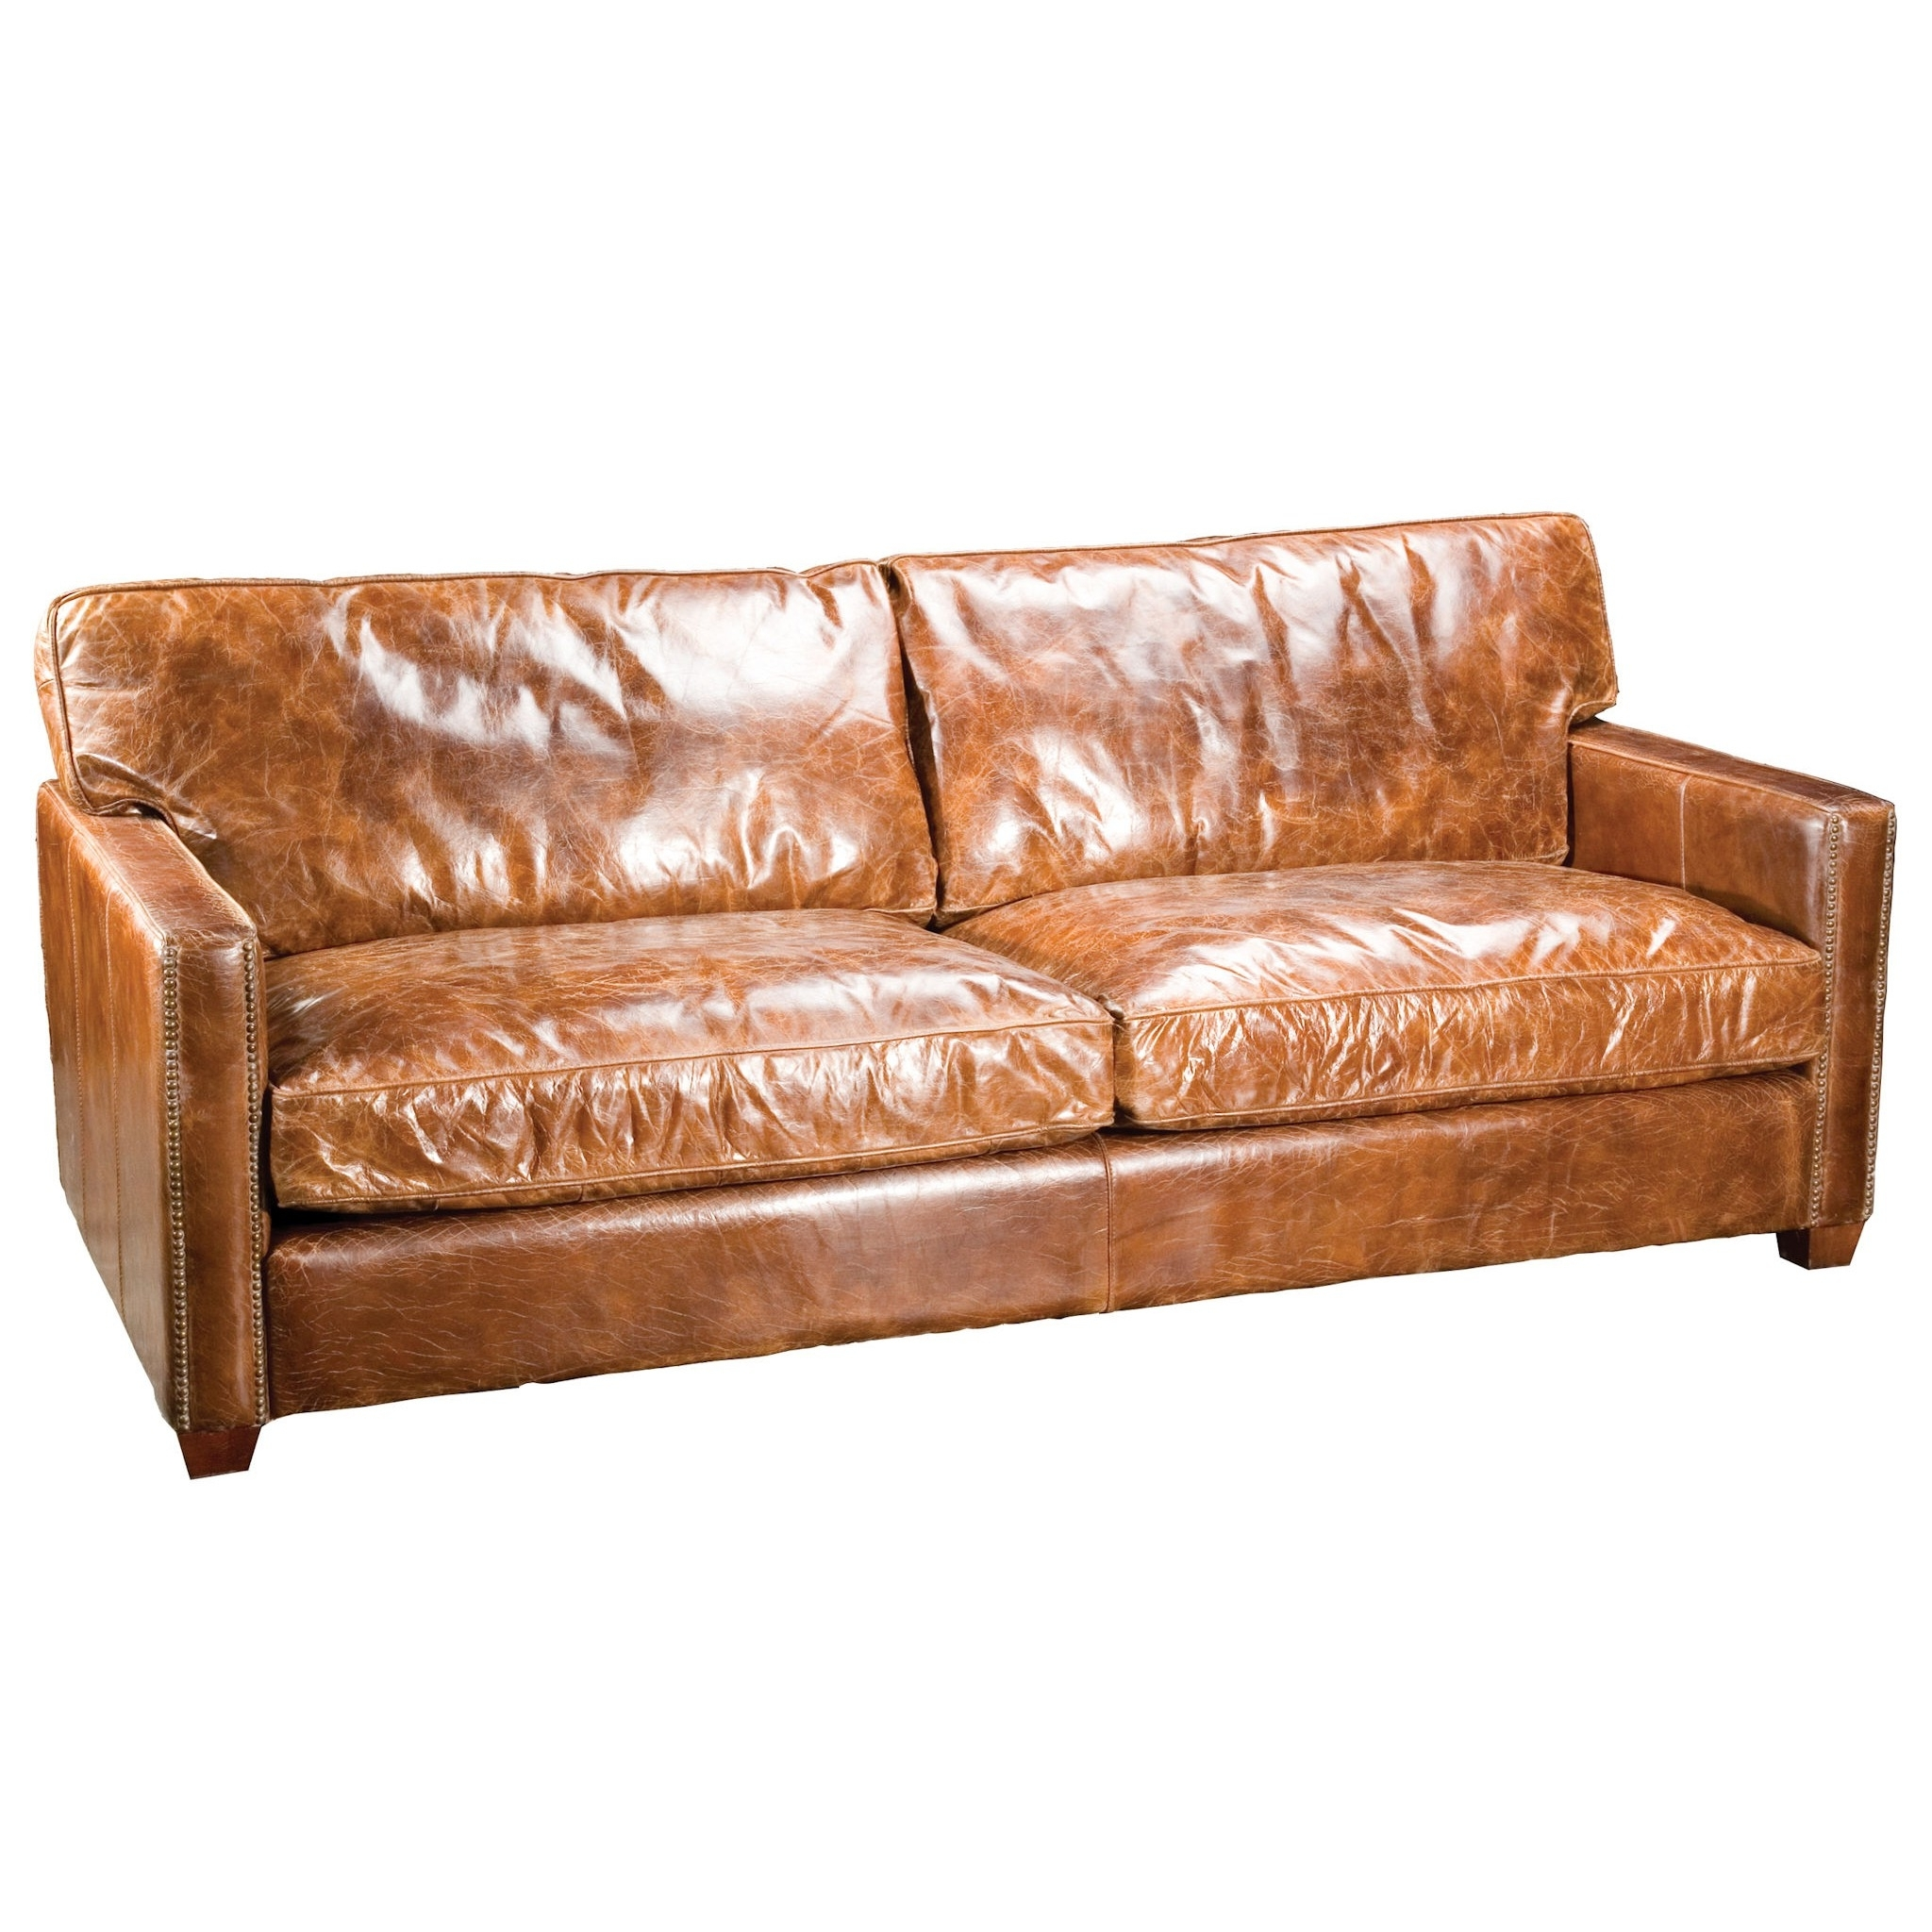 Fashionable Espresso Leather Top Grain Amusing Full Grain Leather Sofa – Home With Full Grain Leather Sofas (View 7 of 20)